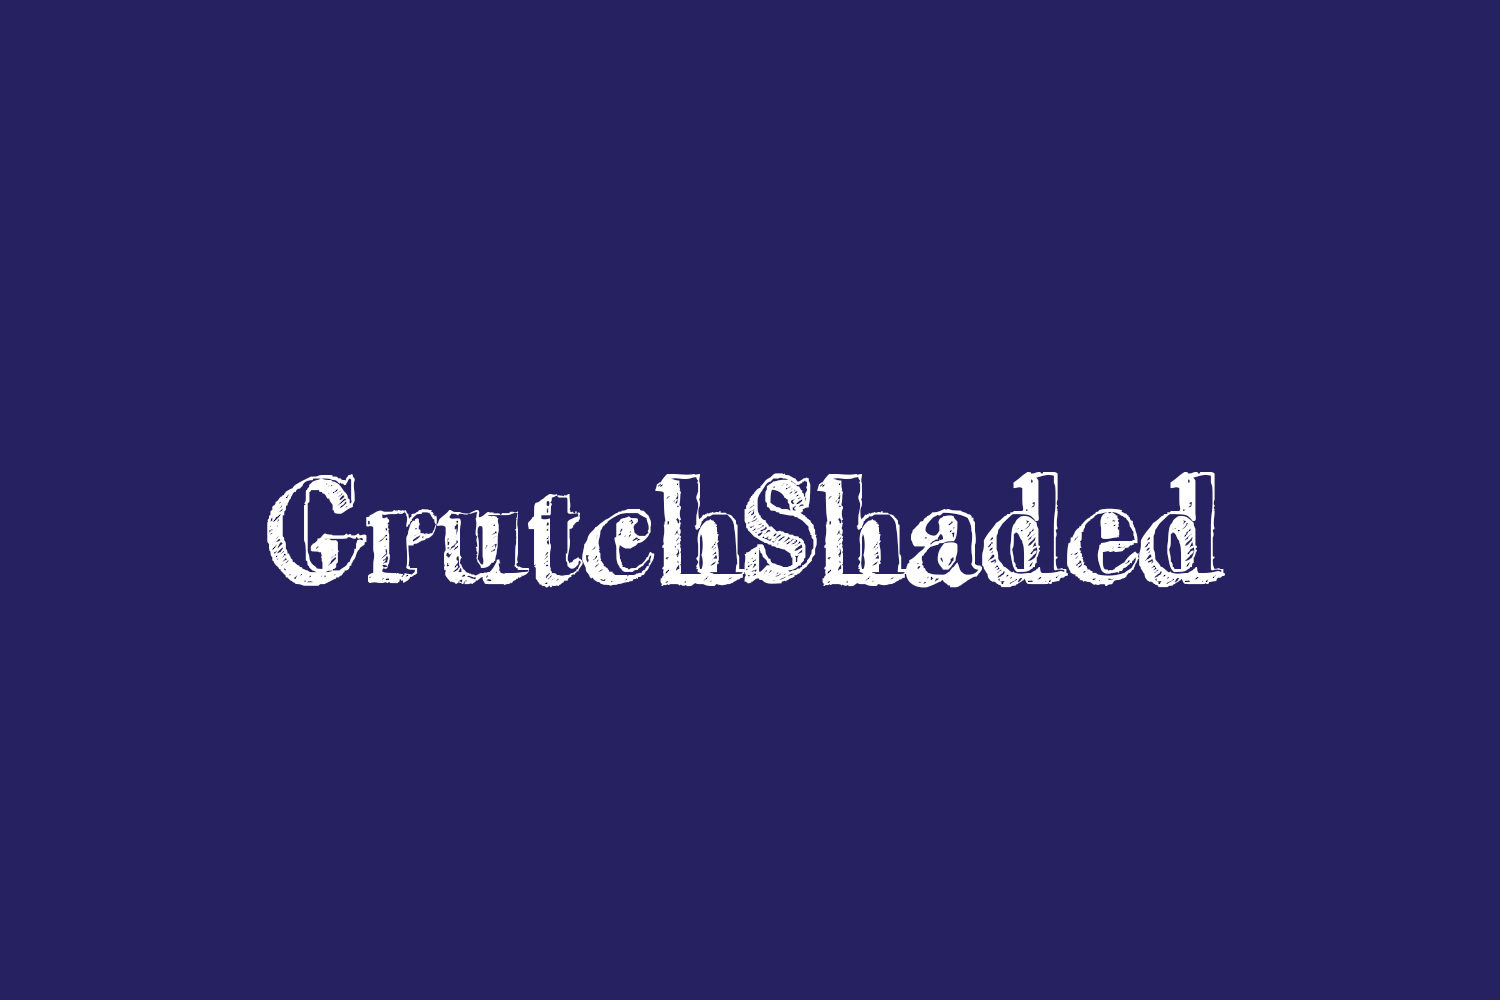 GrutchShaded